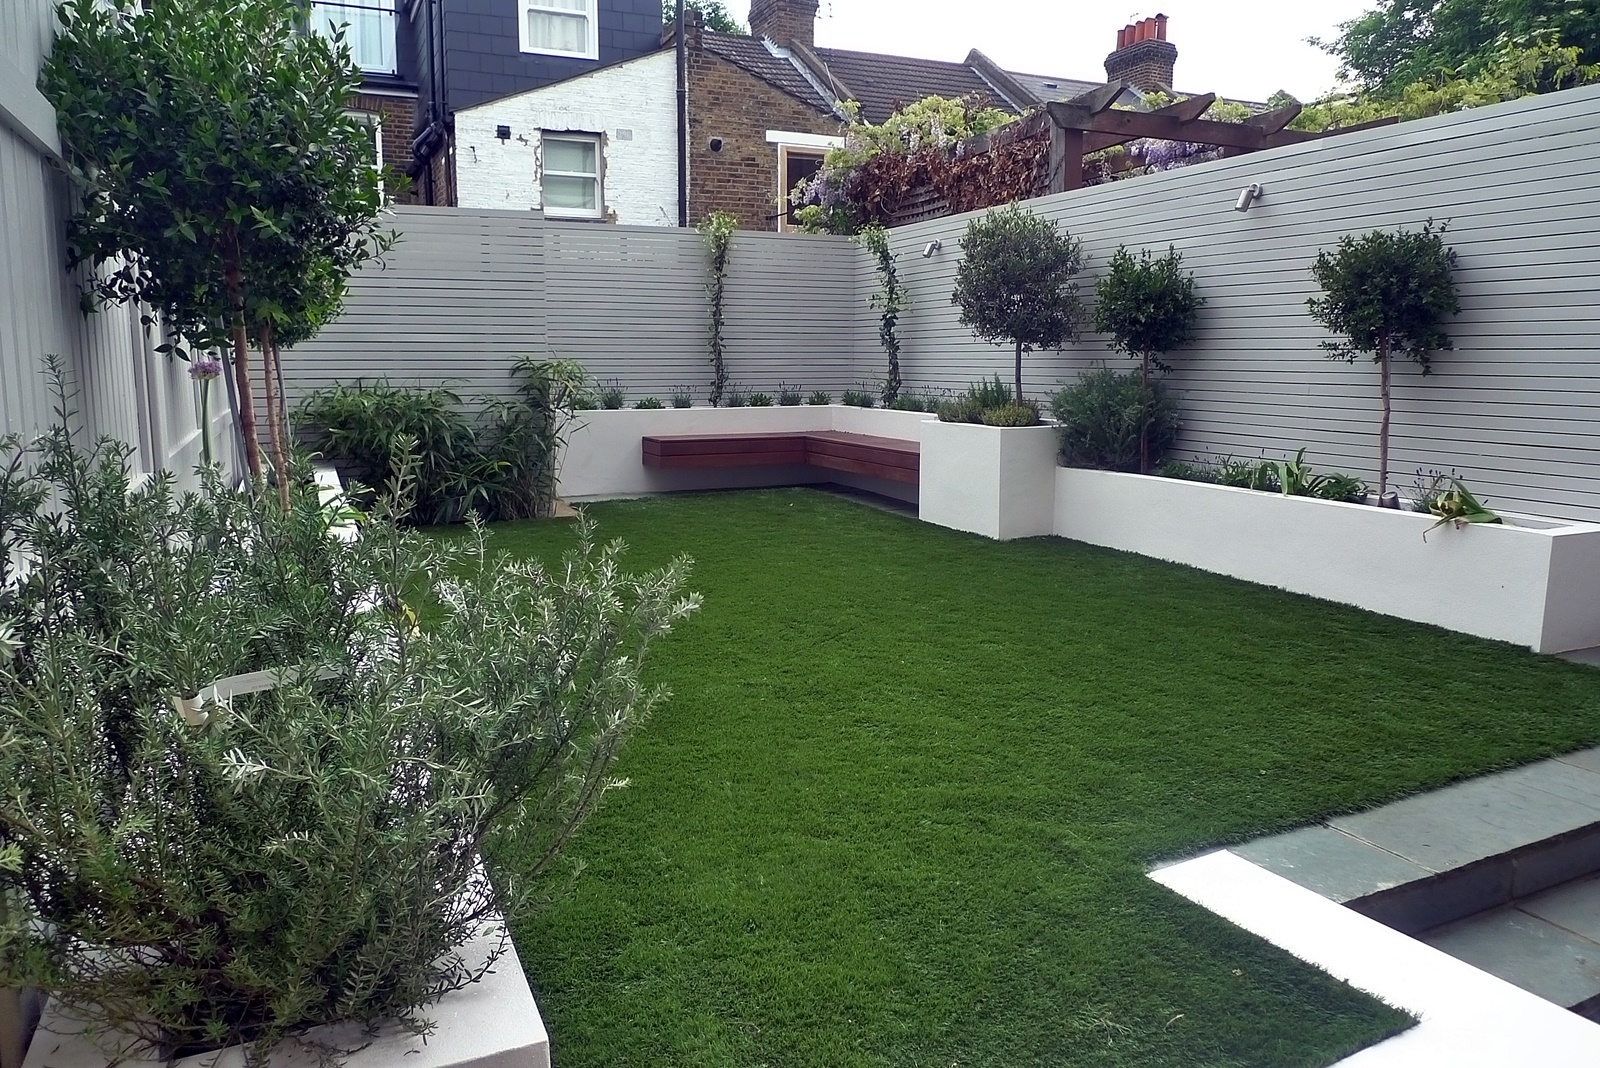 Artificial grass easi grass grey painted fences modern ... on Patio And Grass Garden Ideas id=21140